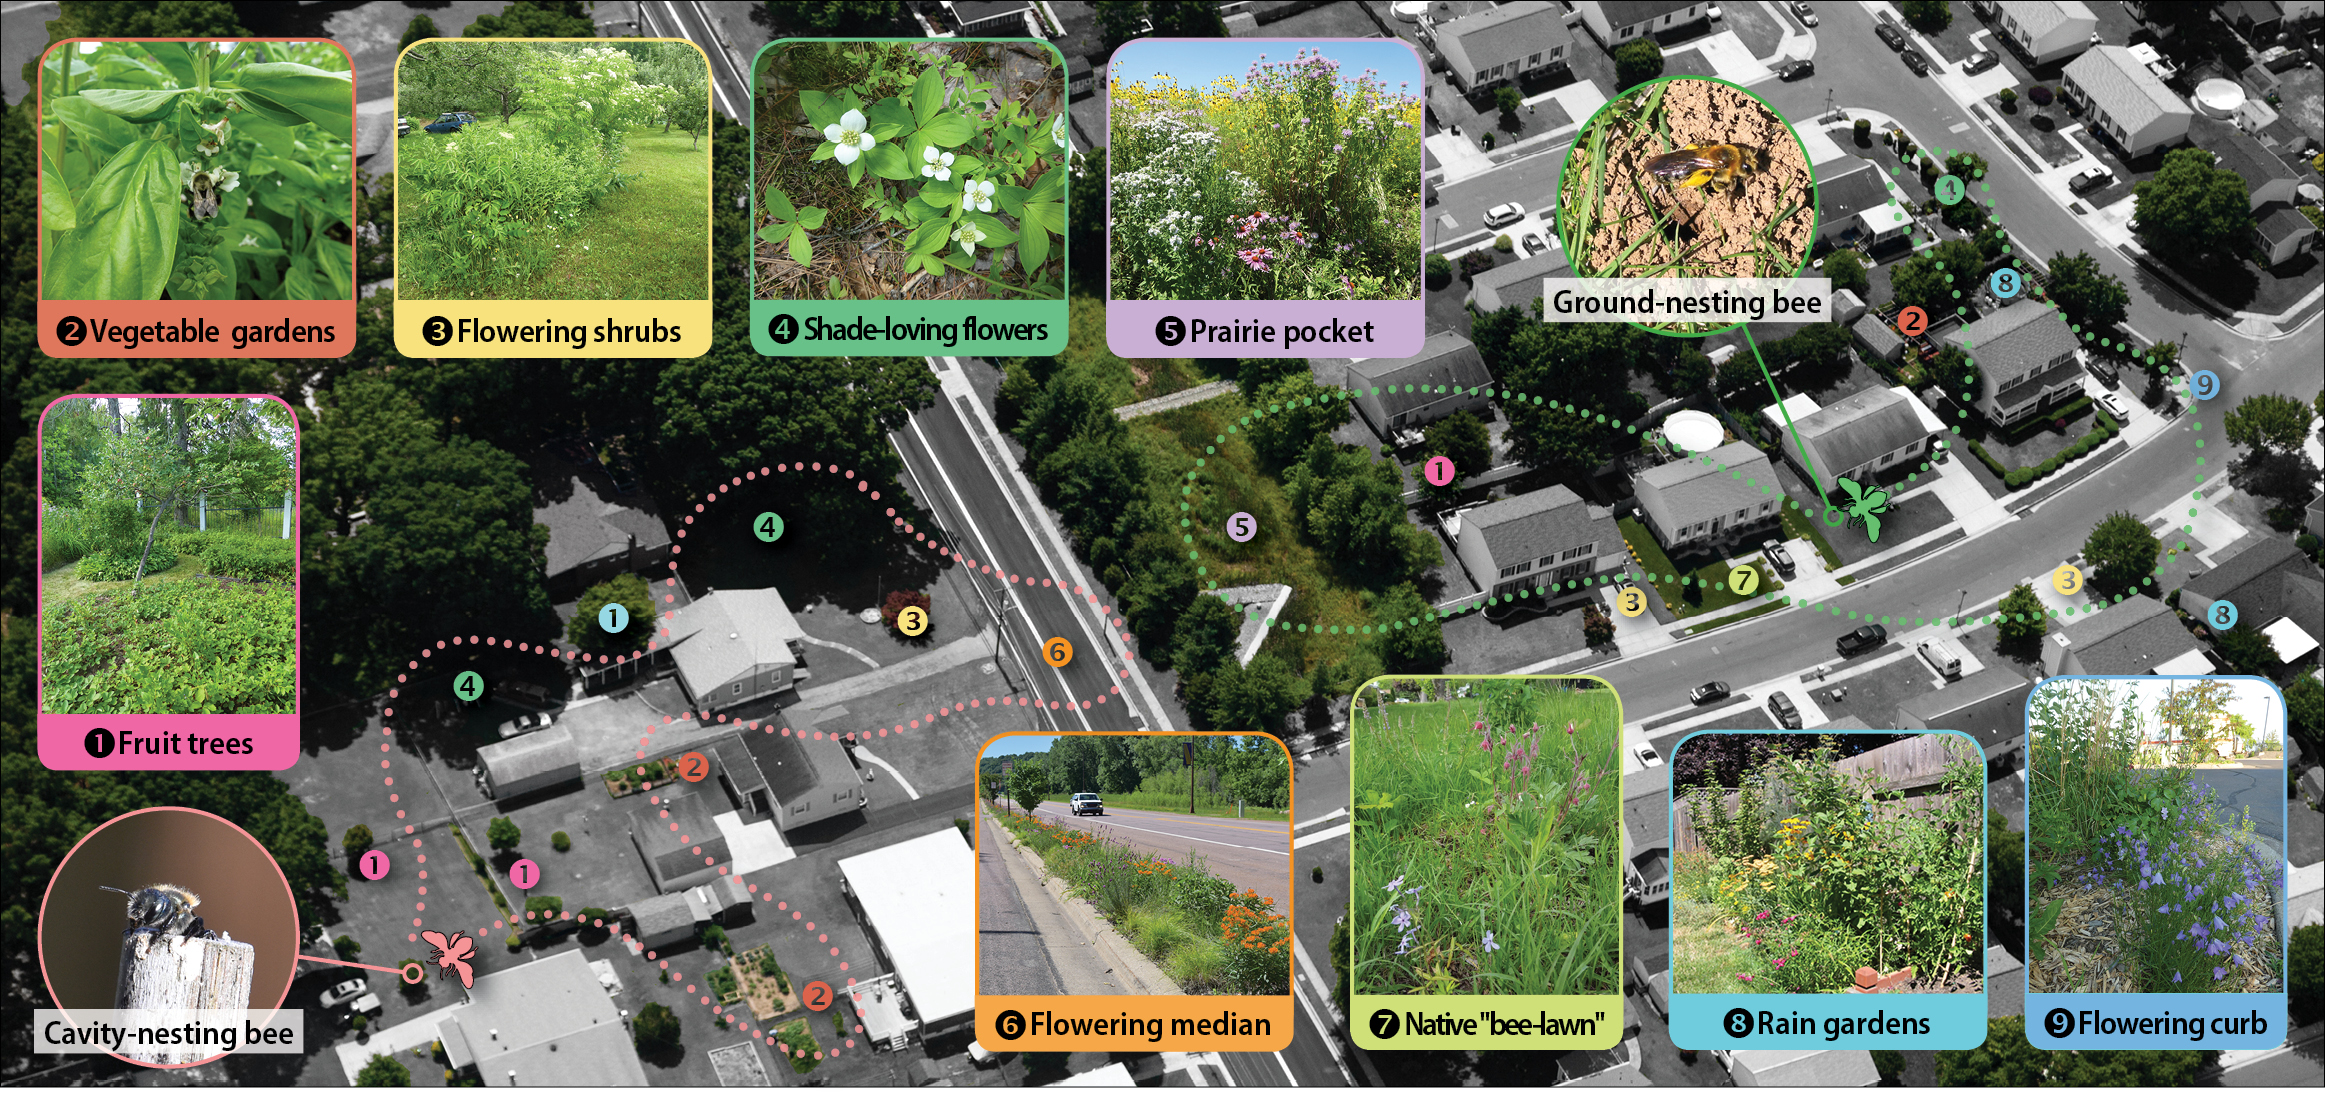 "This diagram, superimposed over an aerial image of a housing development, shows the different types of habitat that can exist in yards and other urban areas, including fruit trees, vegetable gardens, flowering shrubs, shad-loving flowers, a ""prairie pocket,"" and loose dirt suitable for ground-nesting bees."